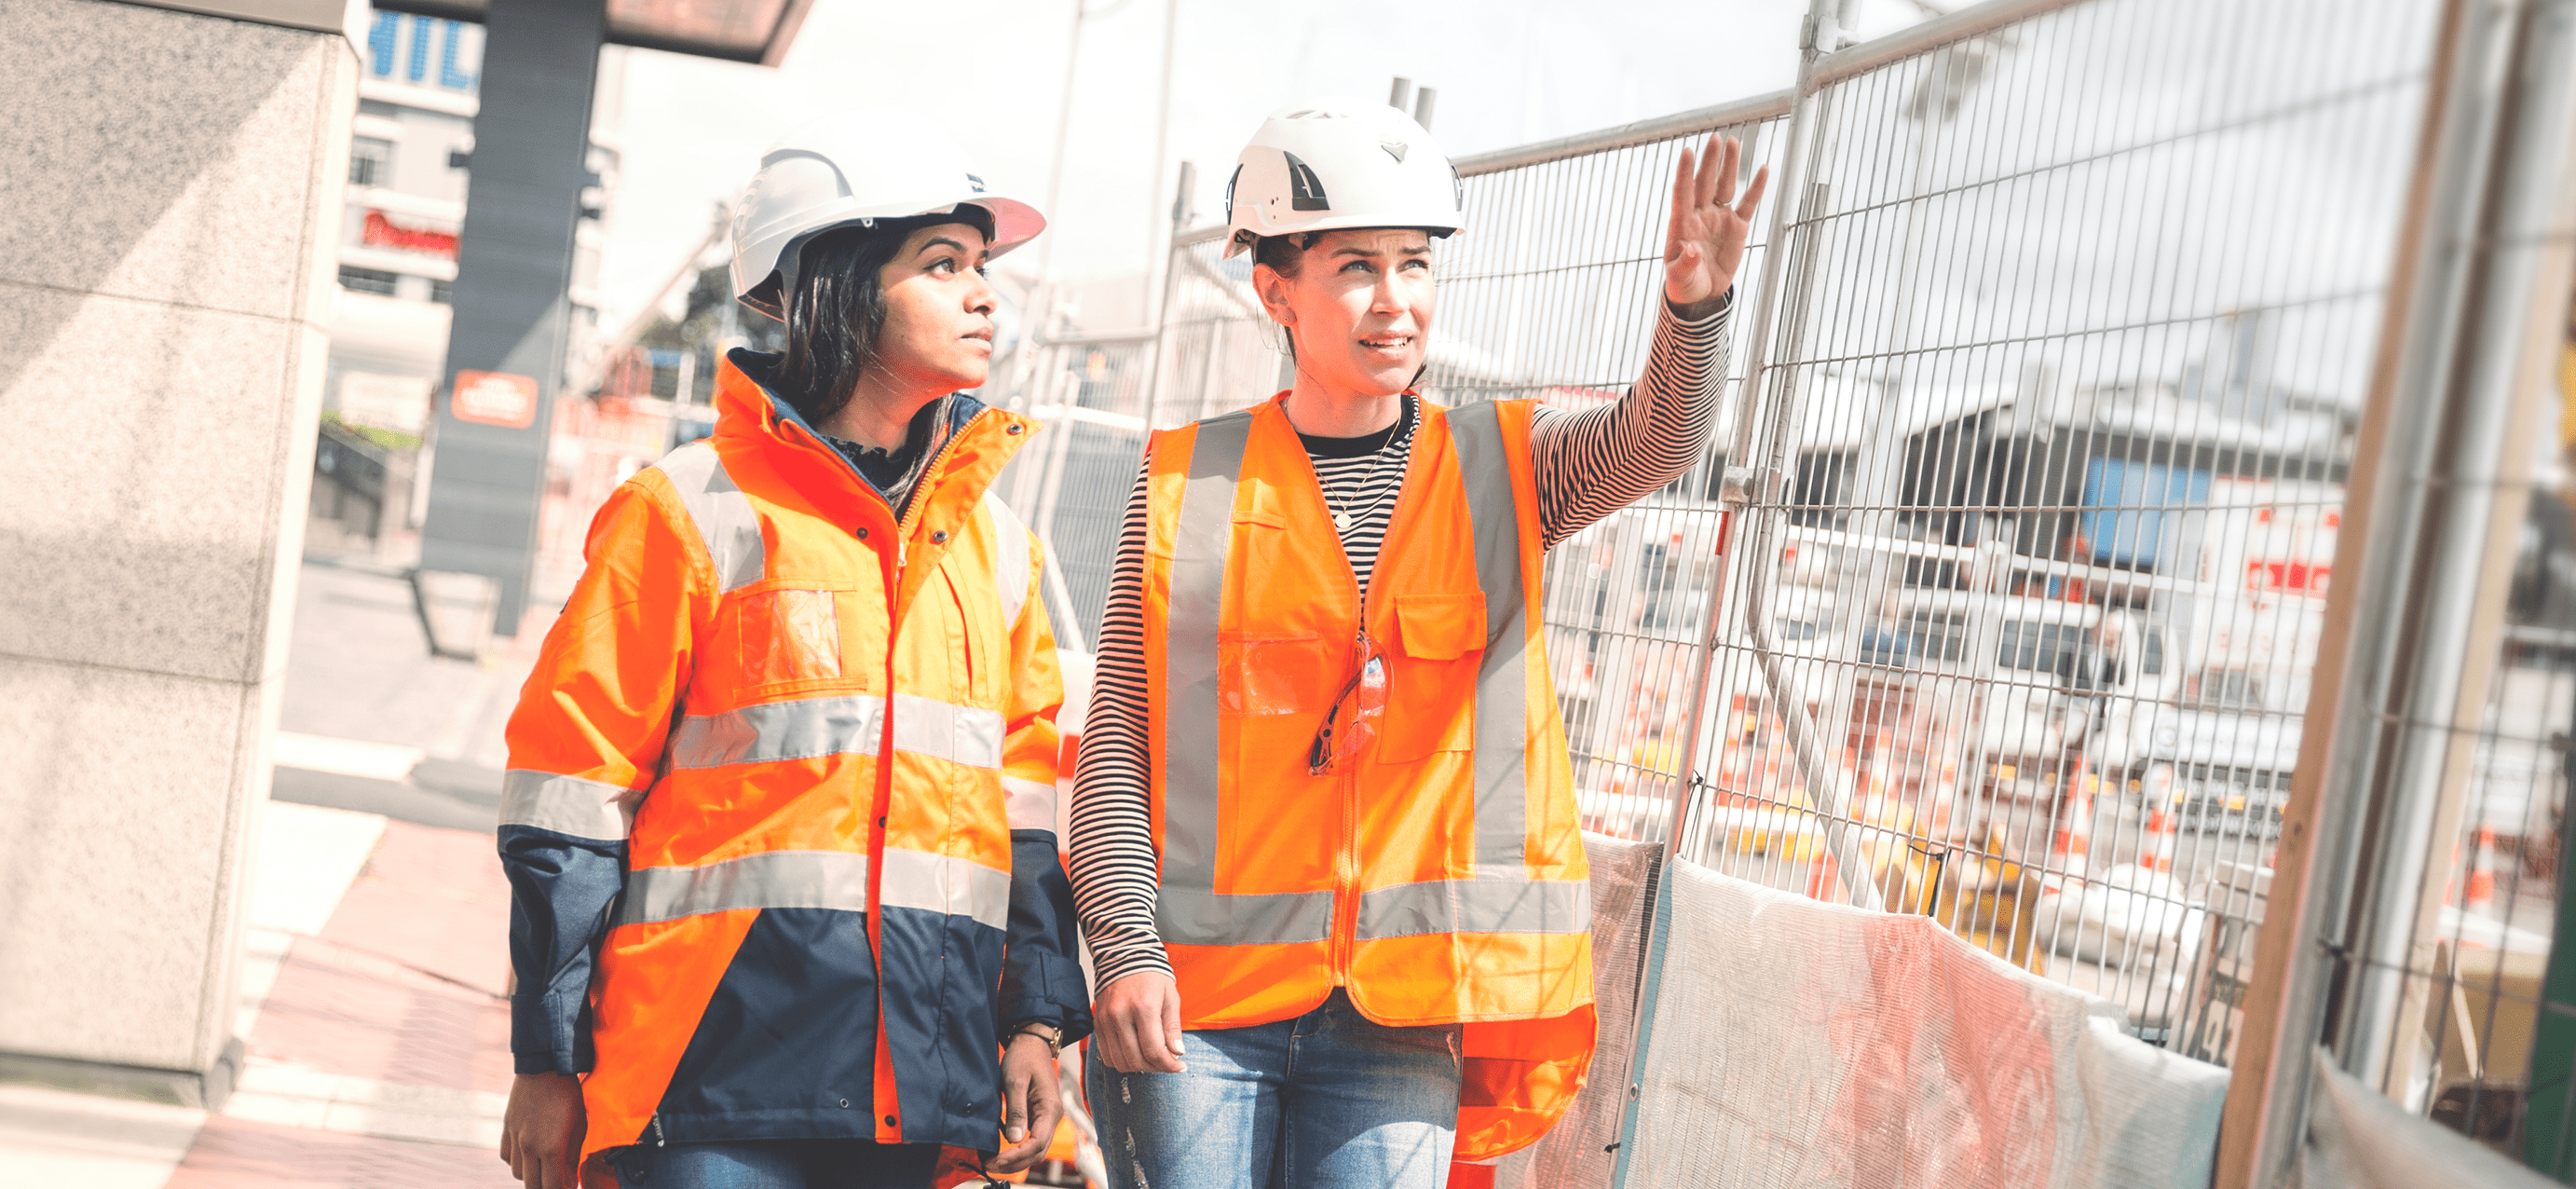 Two women in orange high vis jackets, and hard hats look at a construction site through a wire fence.